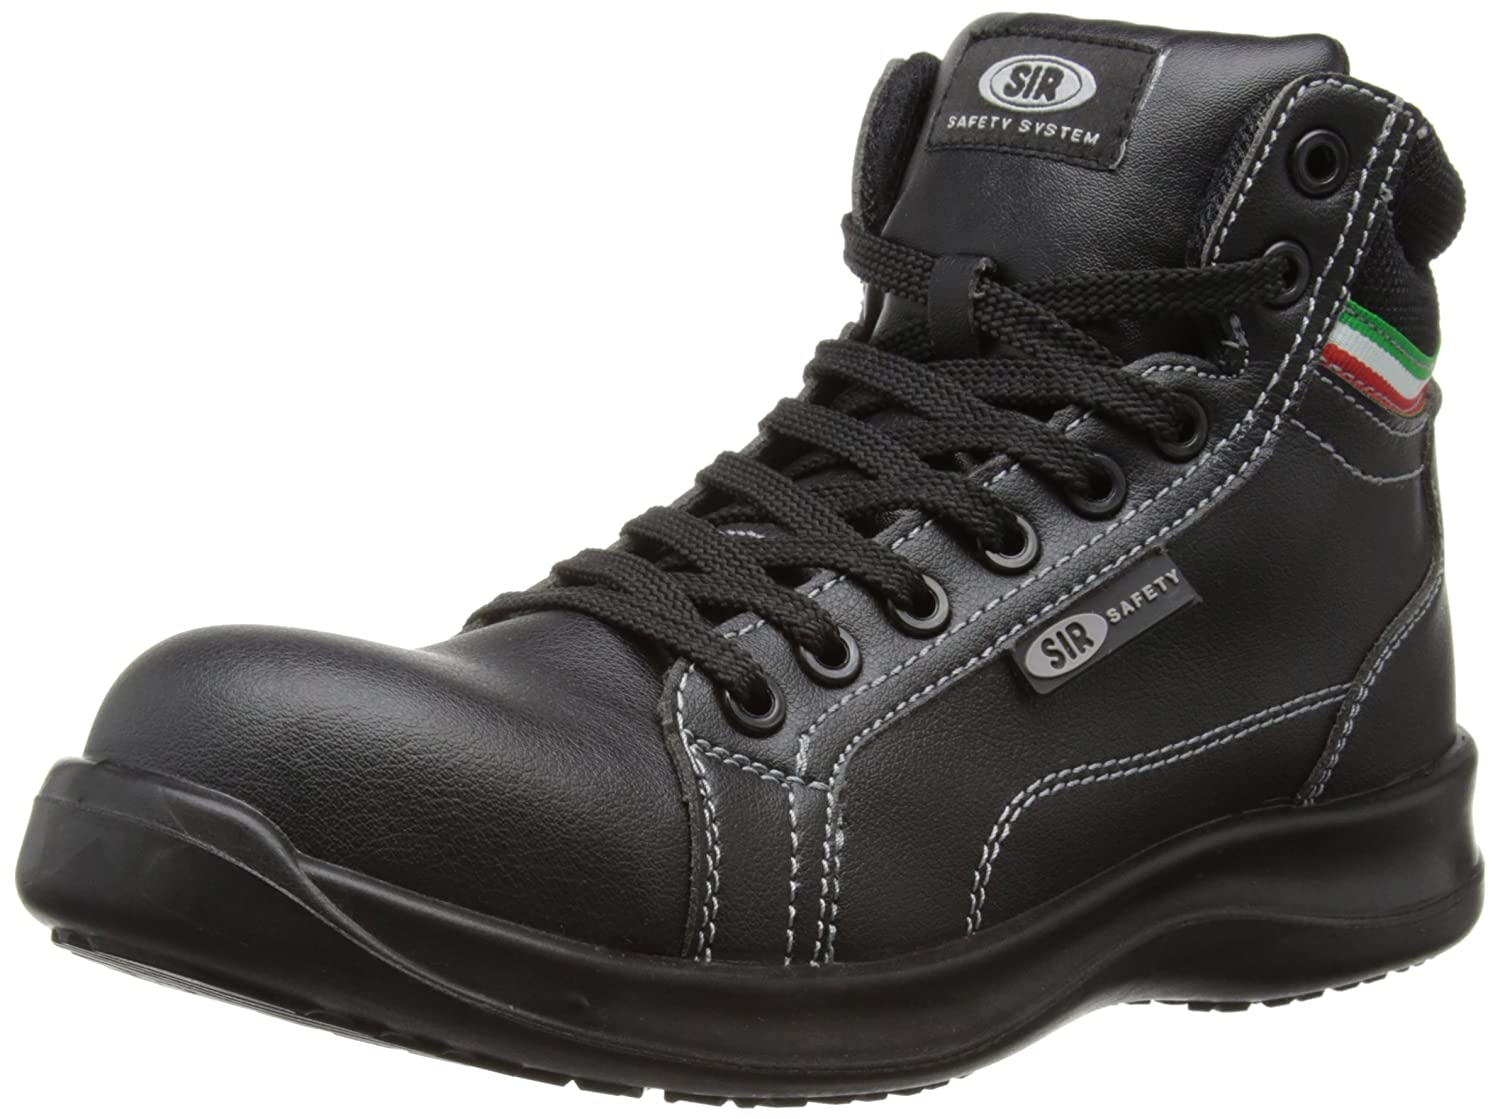 Sir Safety Unisex-Erwachsene Fobia Fobia Fobia High Stiefel 73c284